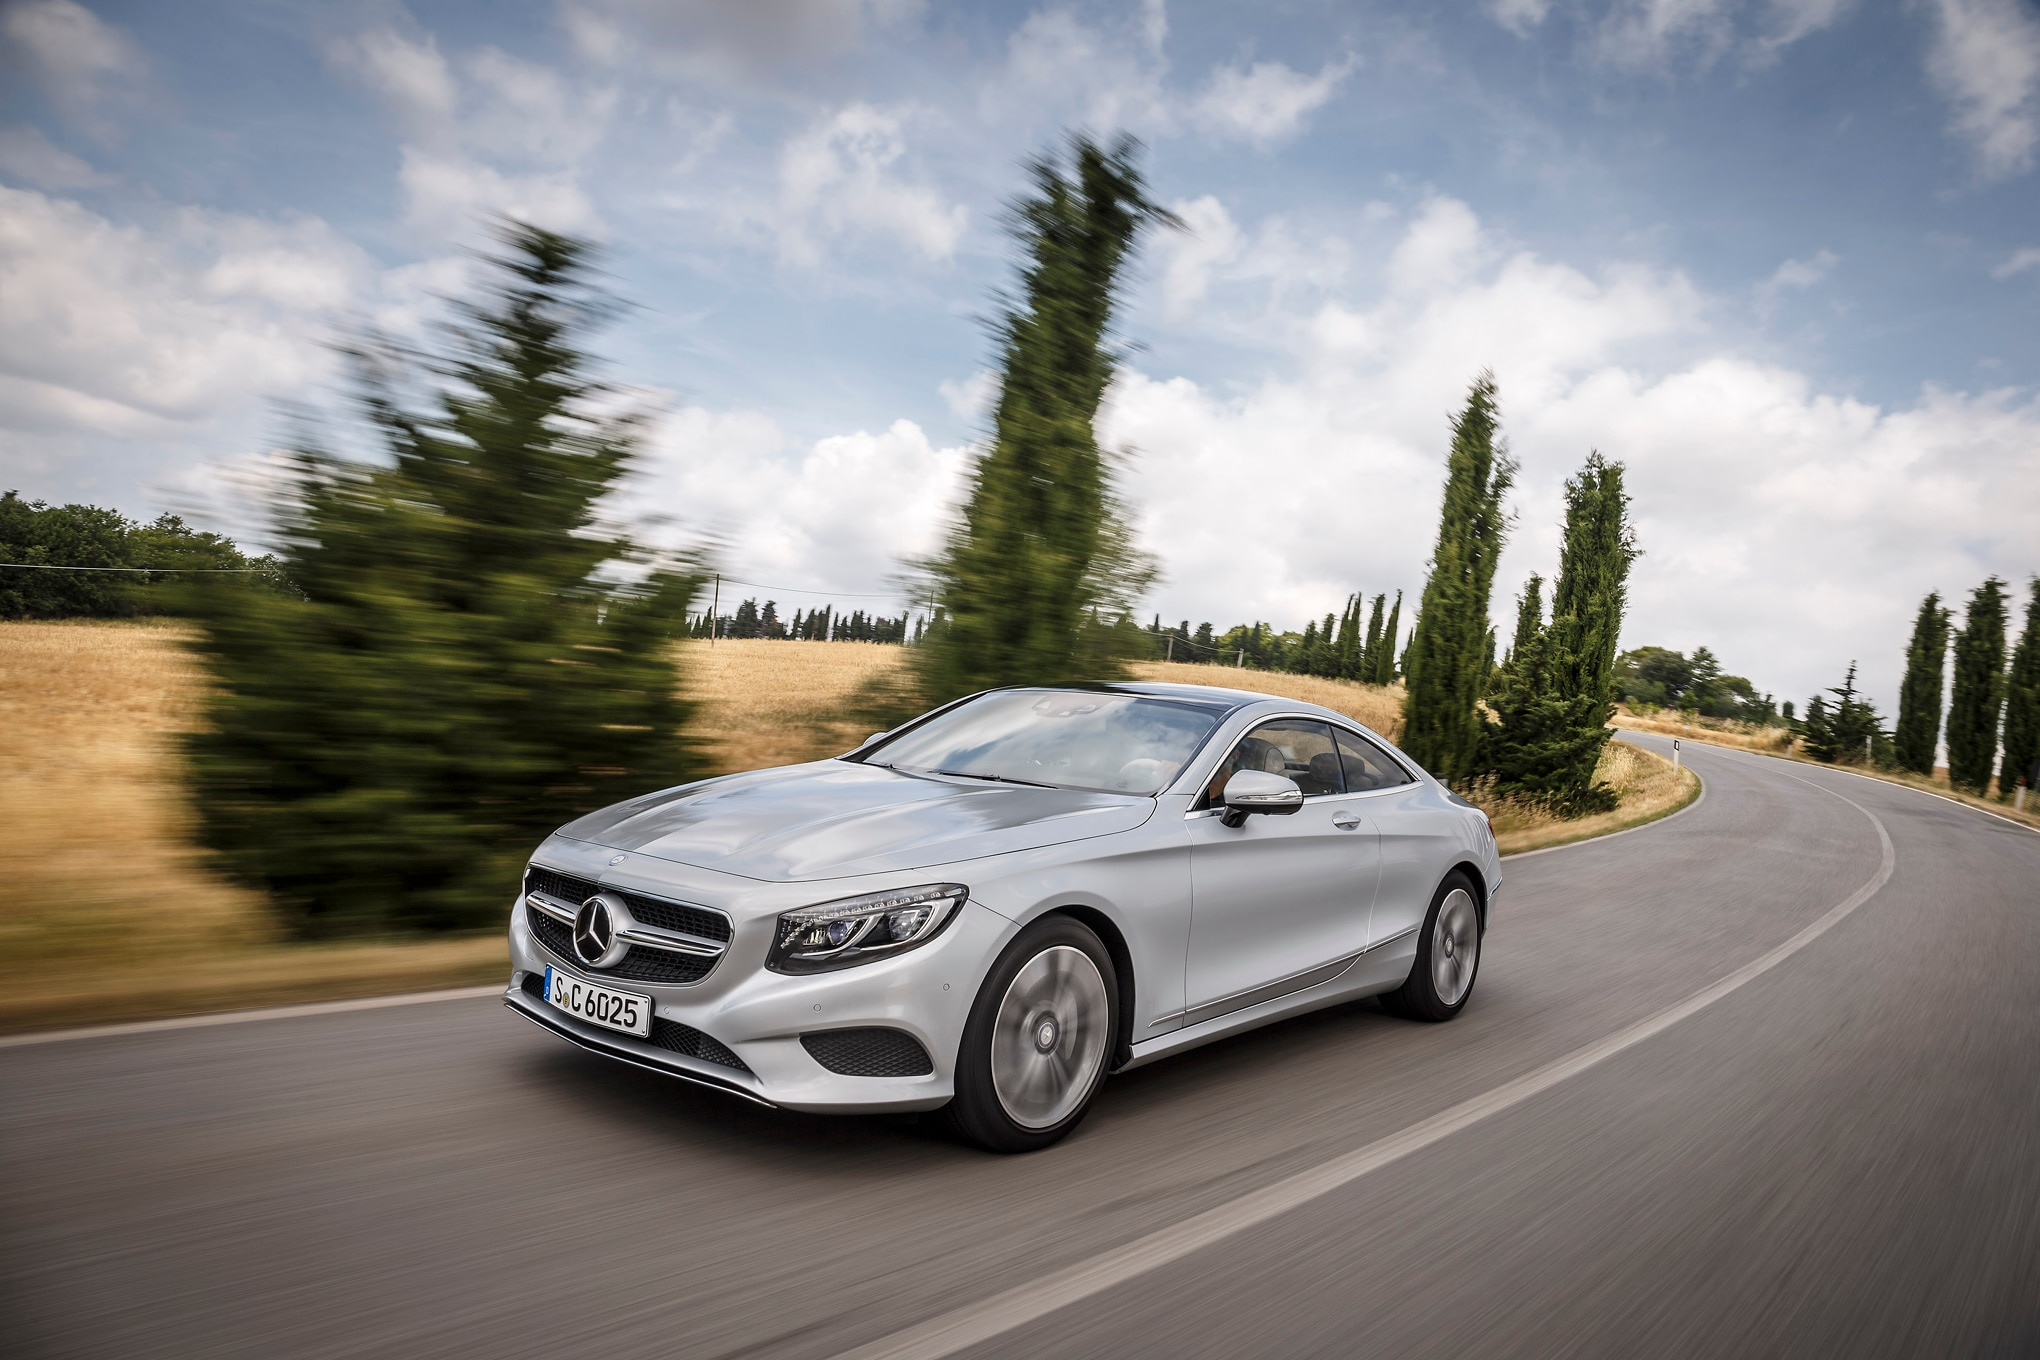 2015 Mercedes Benz S500 Coupe Front Three Quarter In Motion